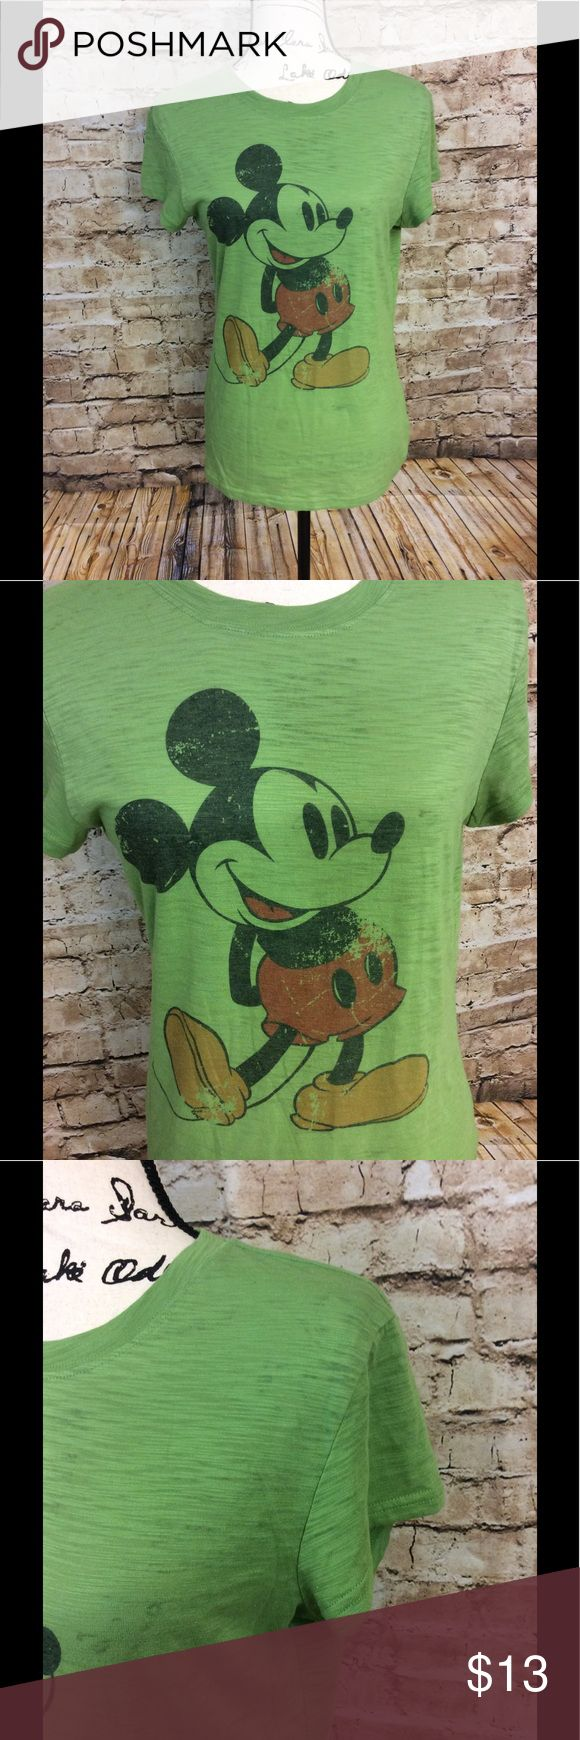 Disneyland green short sleeve Mickey Mouse T-shirt Very gently used green short sleeve Disneyland size large lightweight T-shirt vintage style with Mickey Mouse on the front Length from top to bottom is 26 inches 18 inches Disneyland Tops Tees - Short Sleeve